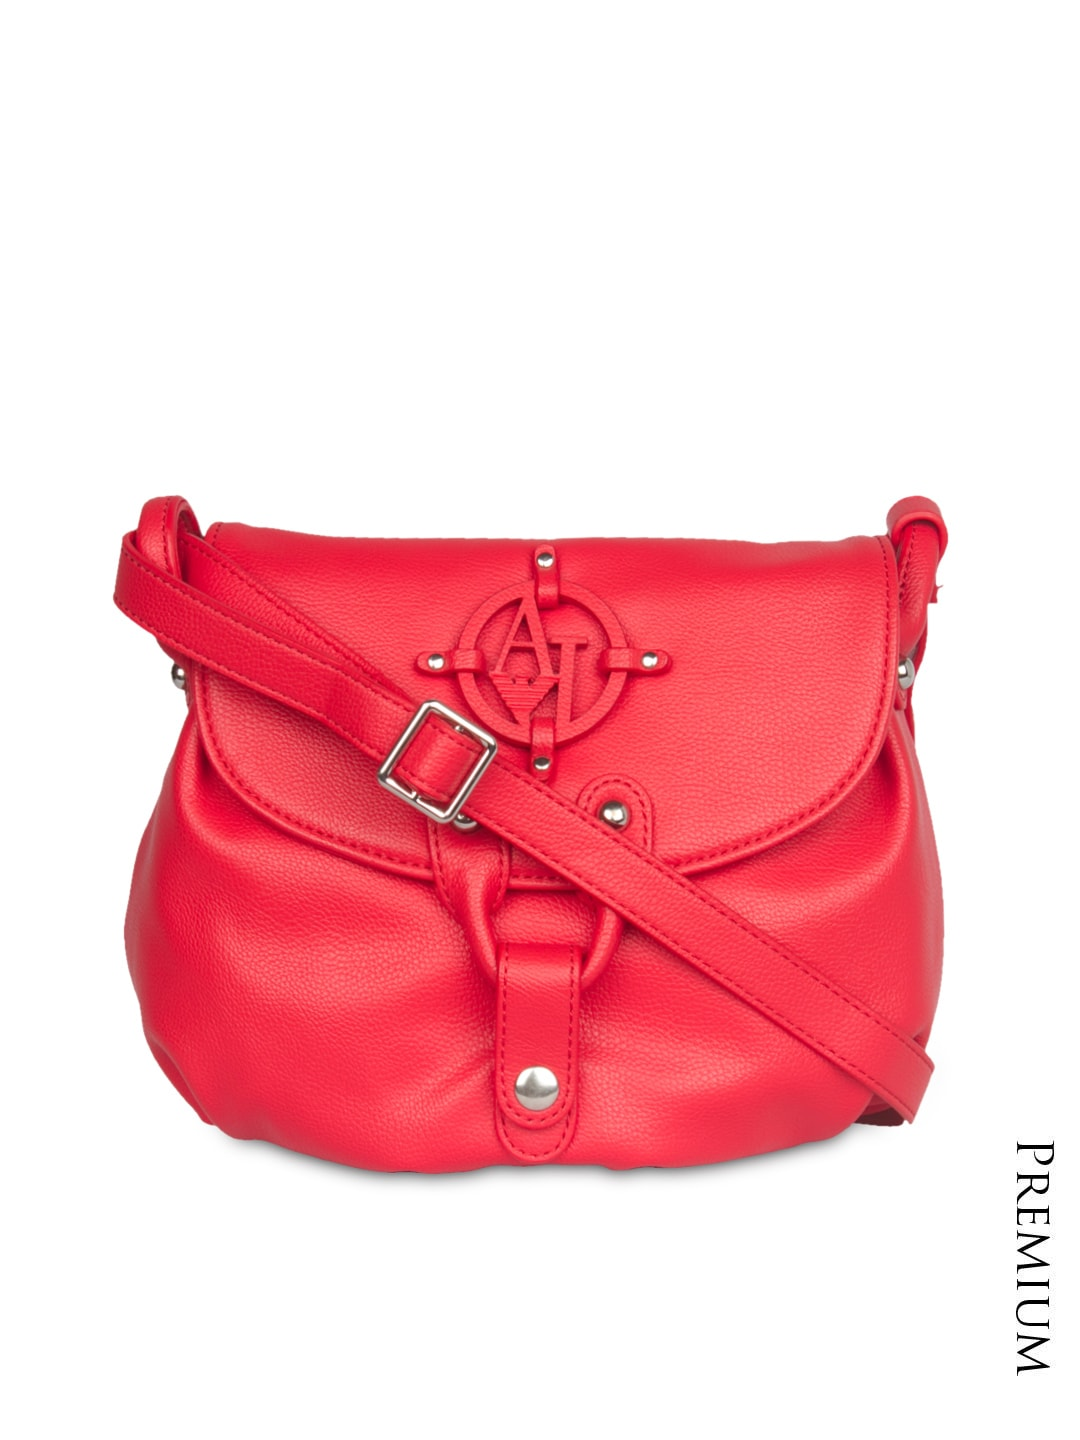 3fd9b0ed24d8 Armani jeans 7287-red Red Sling Bag - Best Price in India